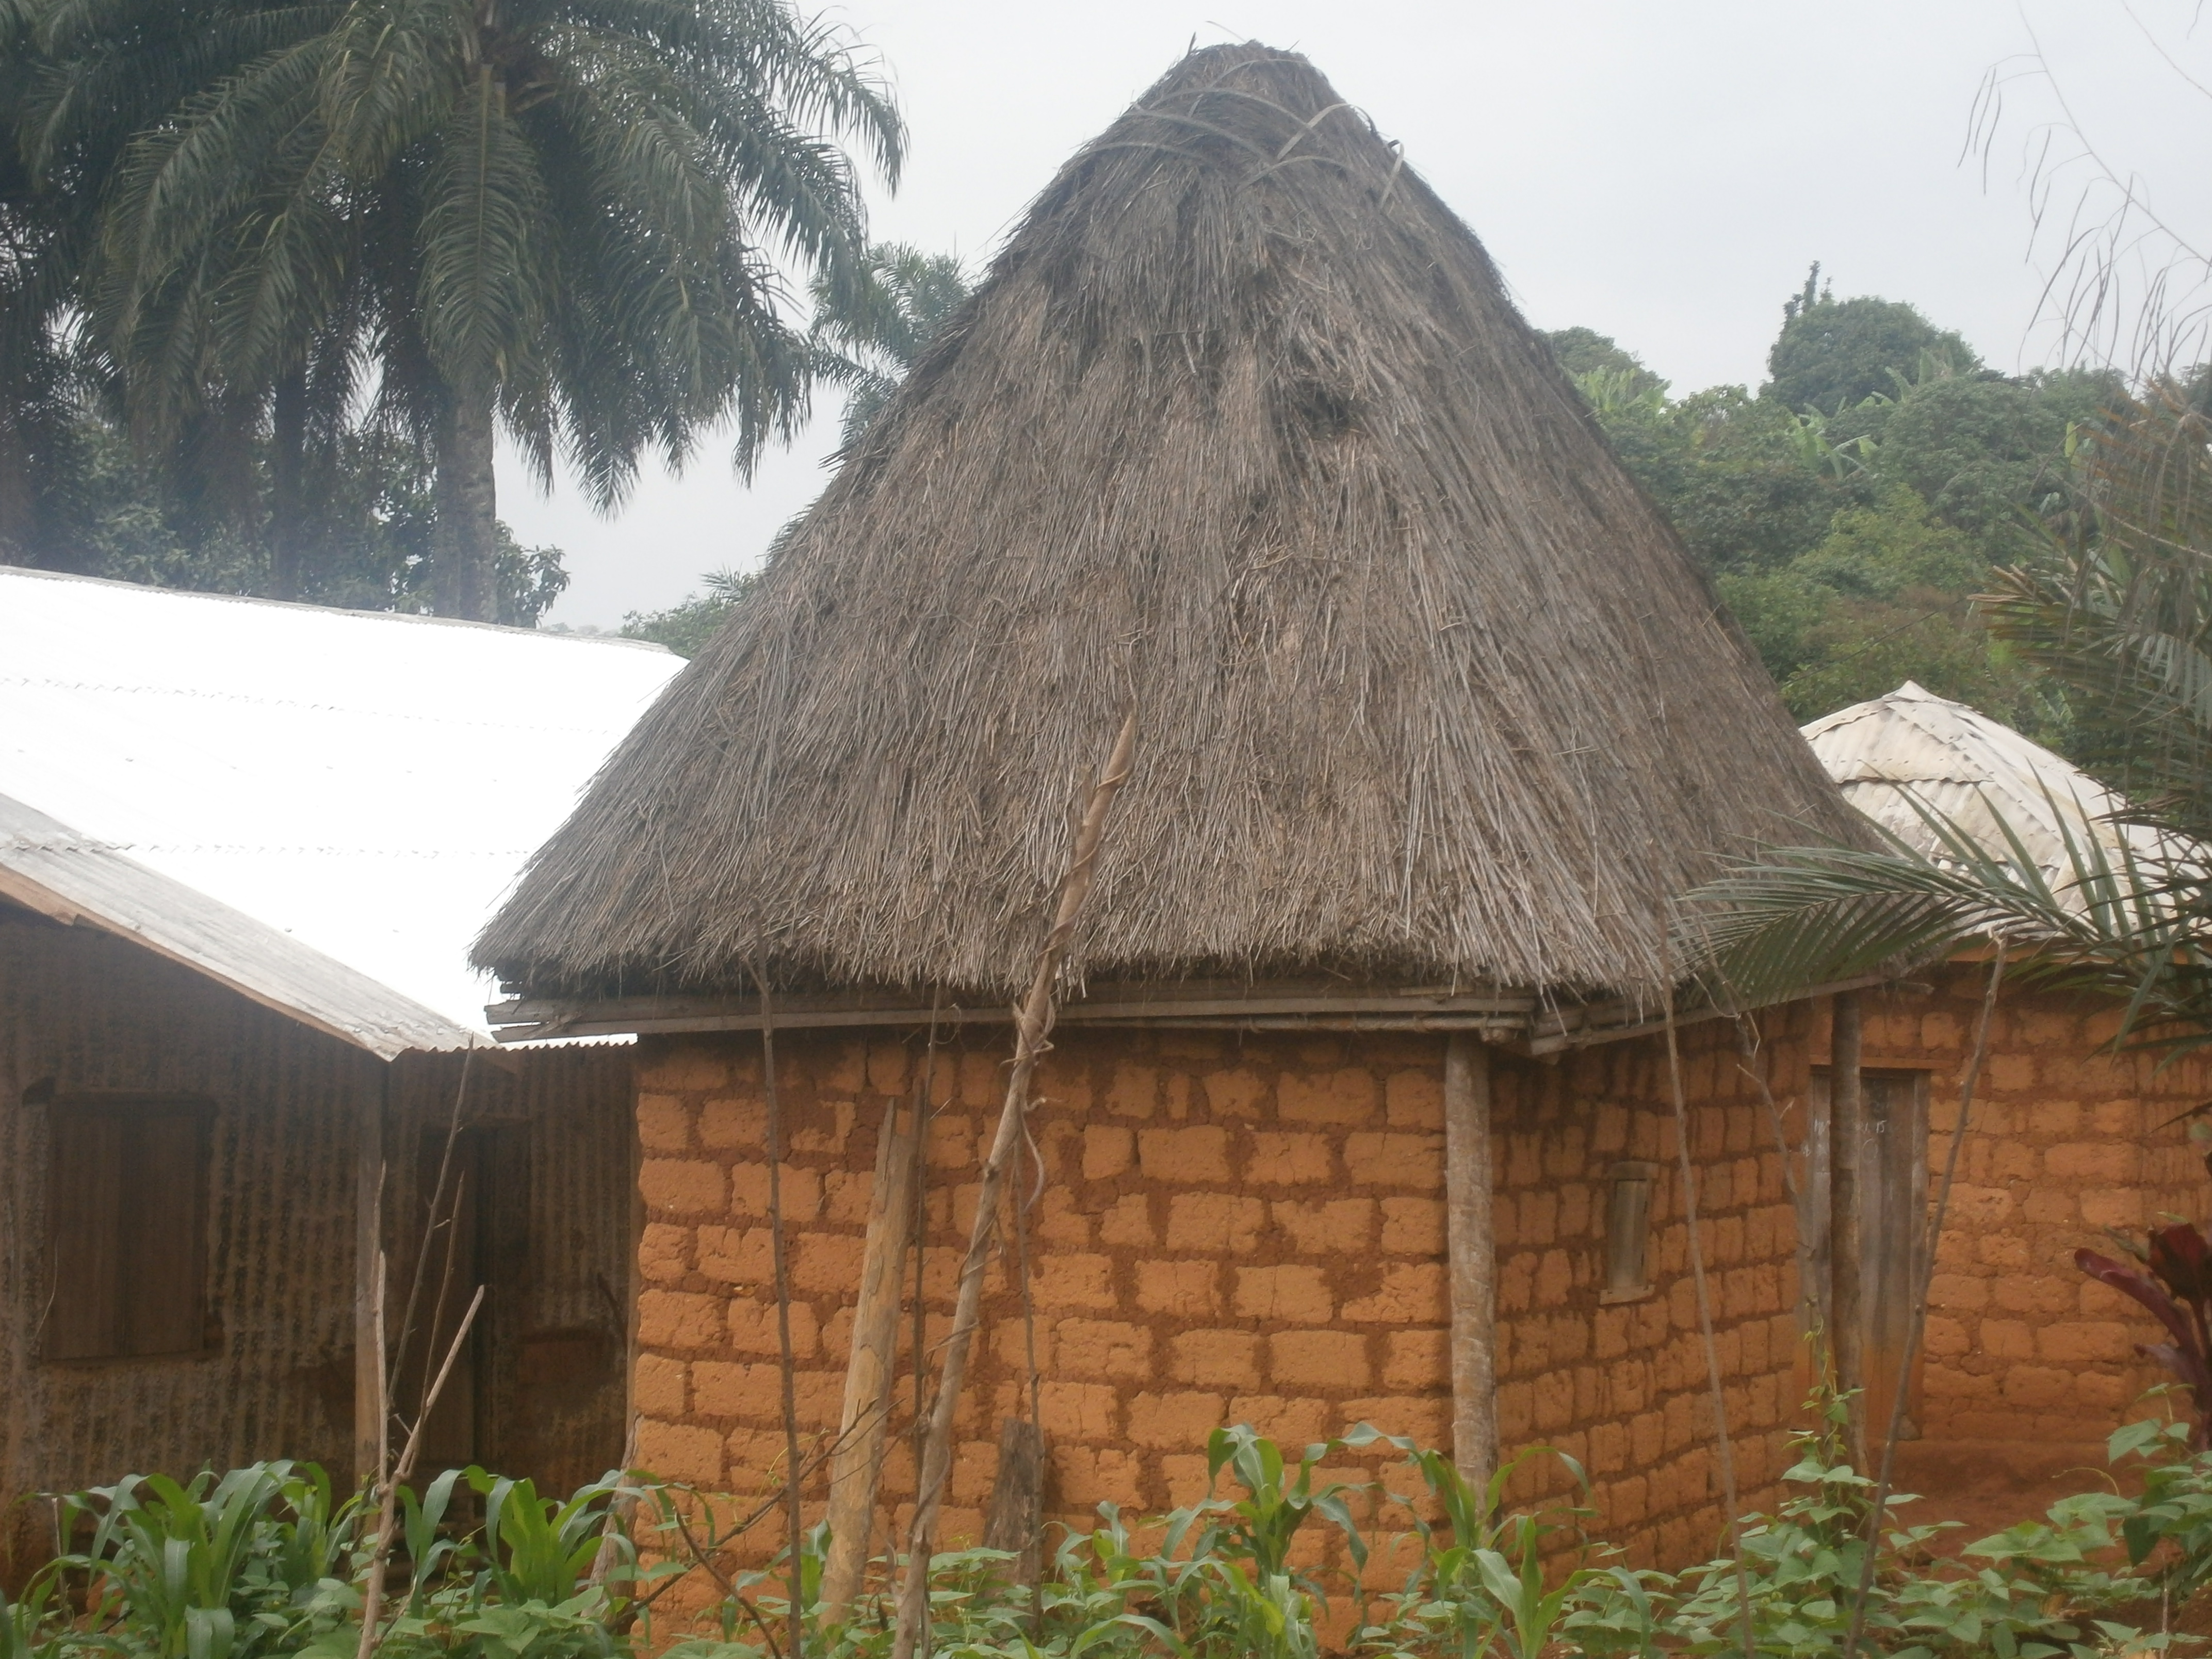 CAPTURING NUTRIENT RICH WATER FROM THE THATCHED ROOFS